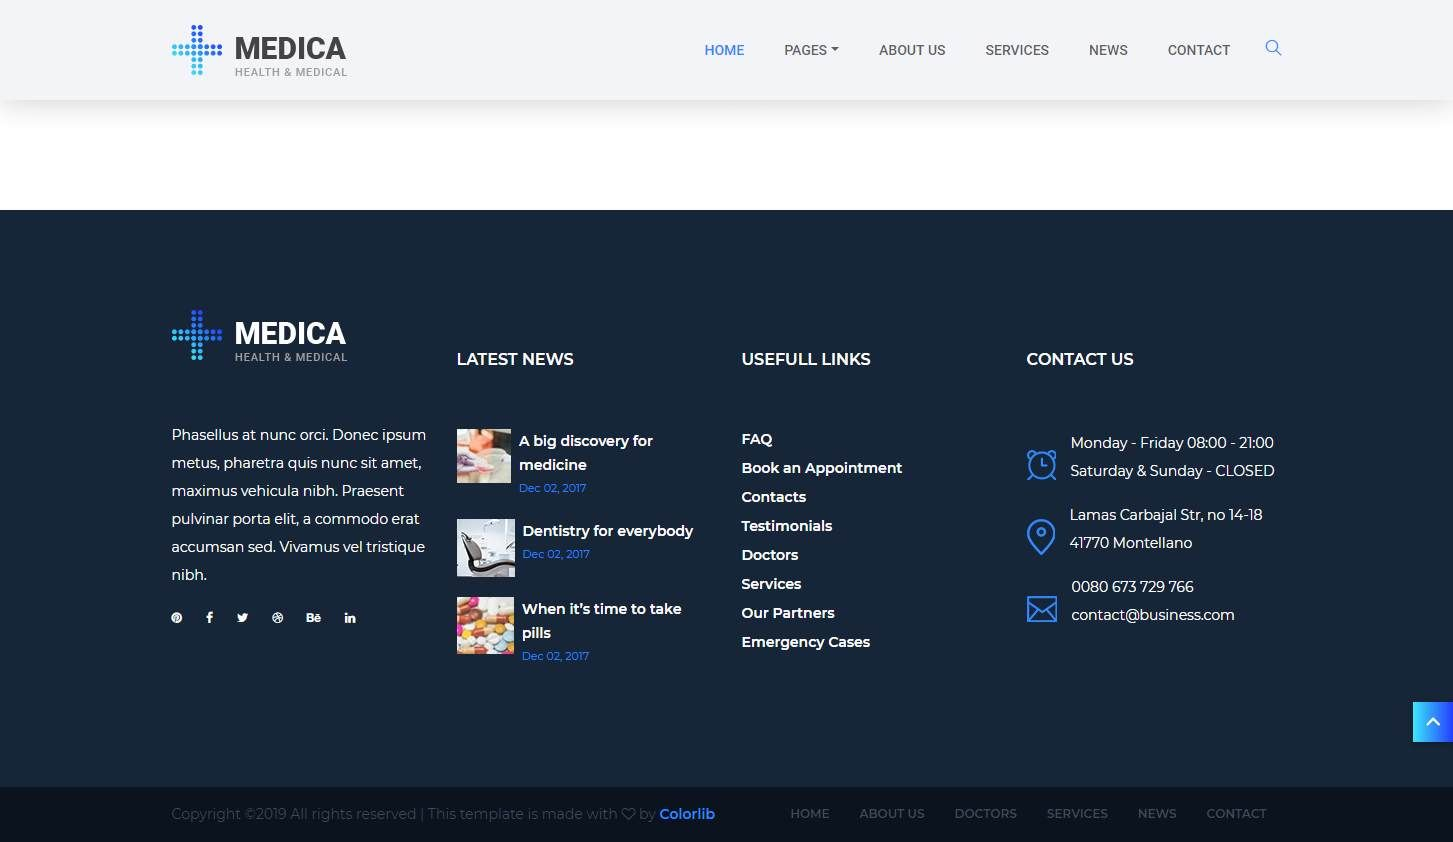 medica  a free health and medical website template